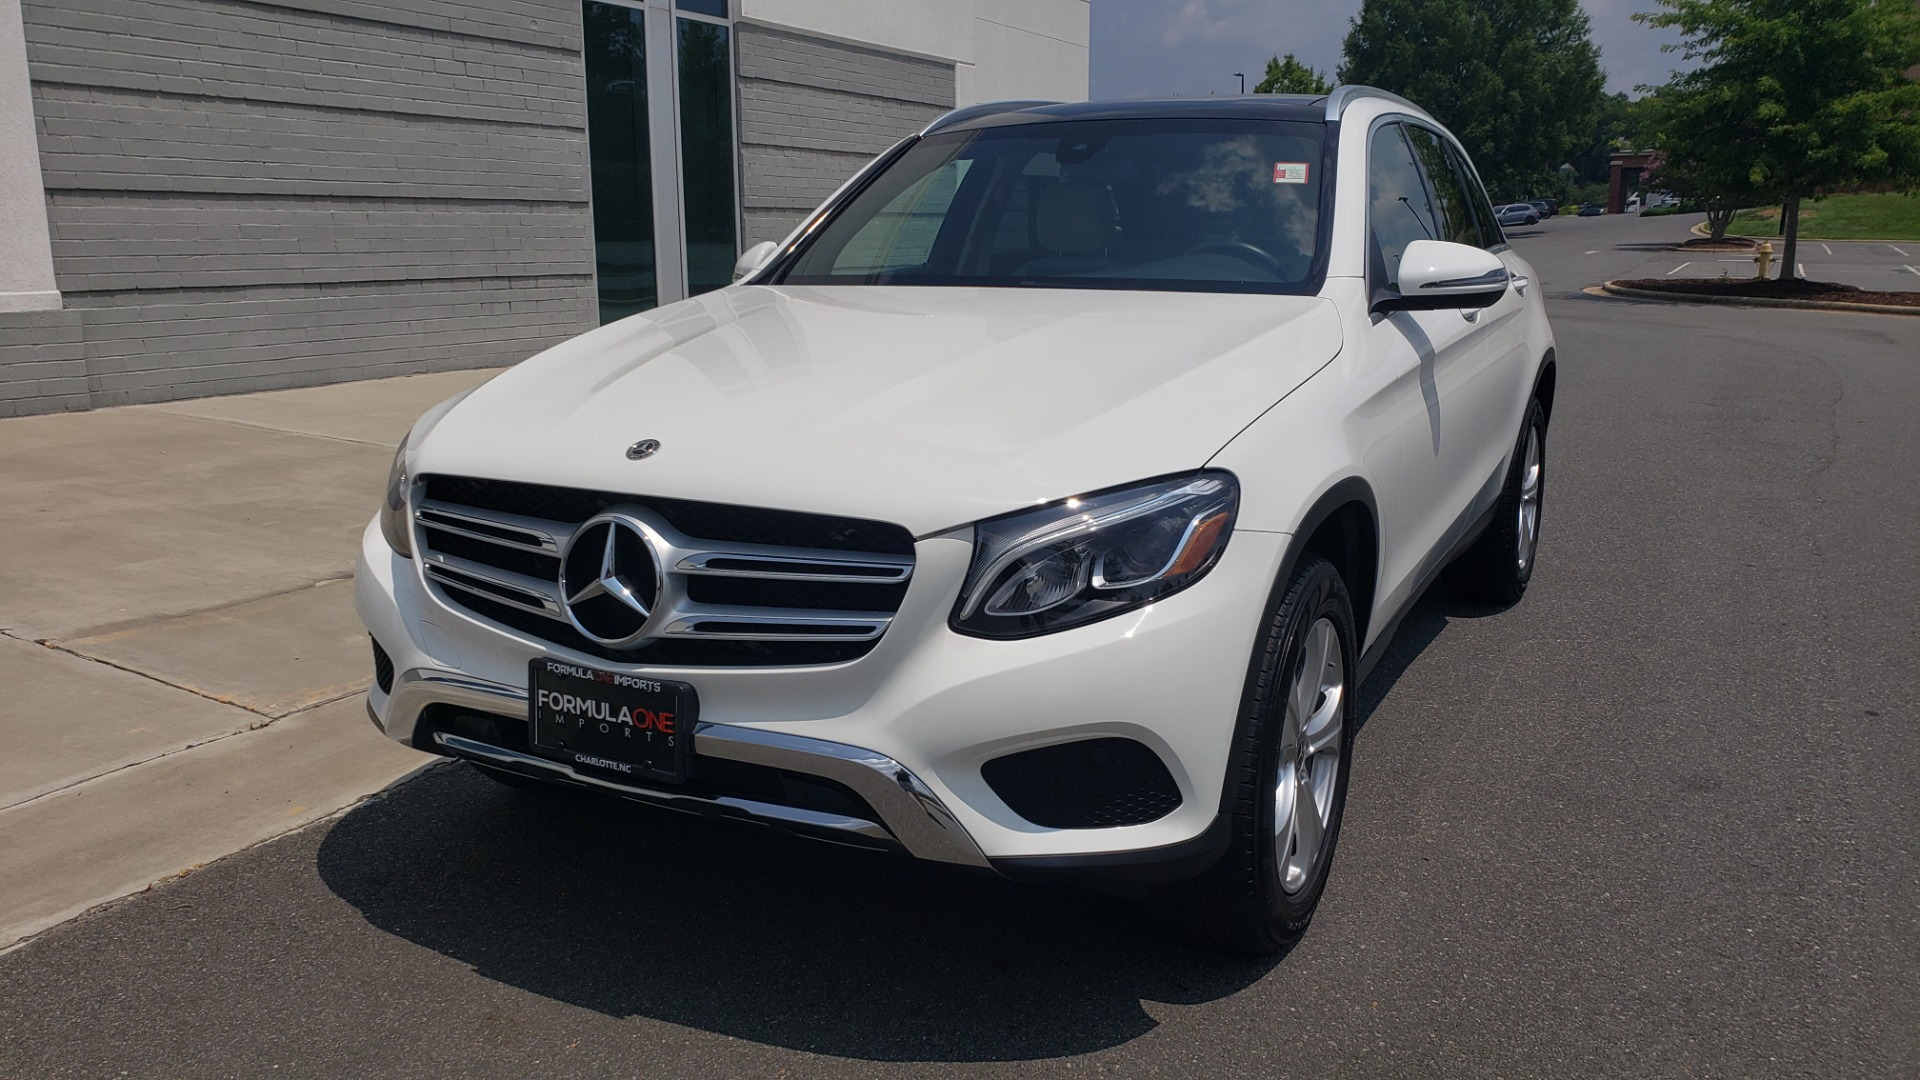 Used 2018 Mercedes-Benz GLC 300 PREMIUM 4MATIC / PANO-ROOF / BURMESTER / REARVIEW for sale $36,295 at Formula Imports in Charlotte NC 28227 3